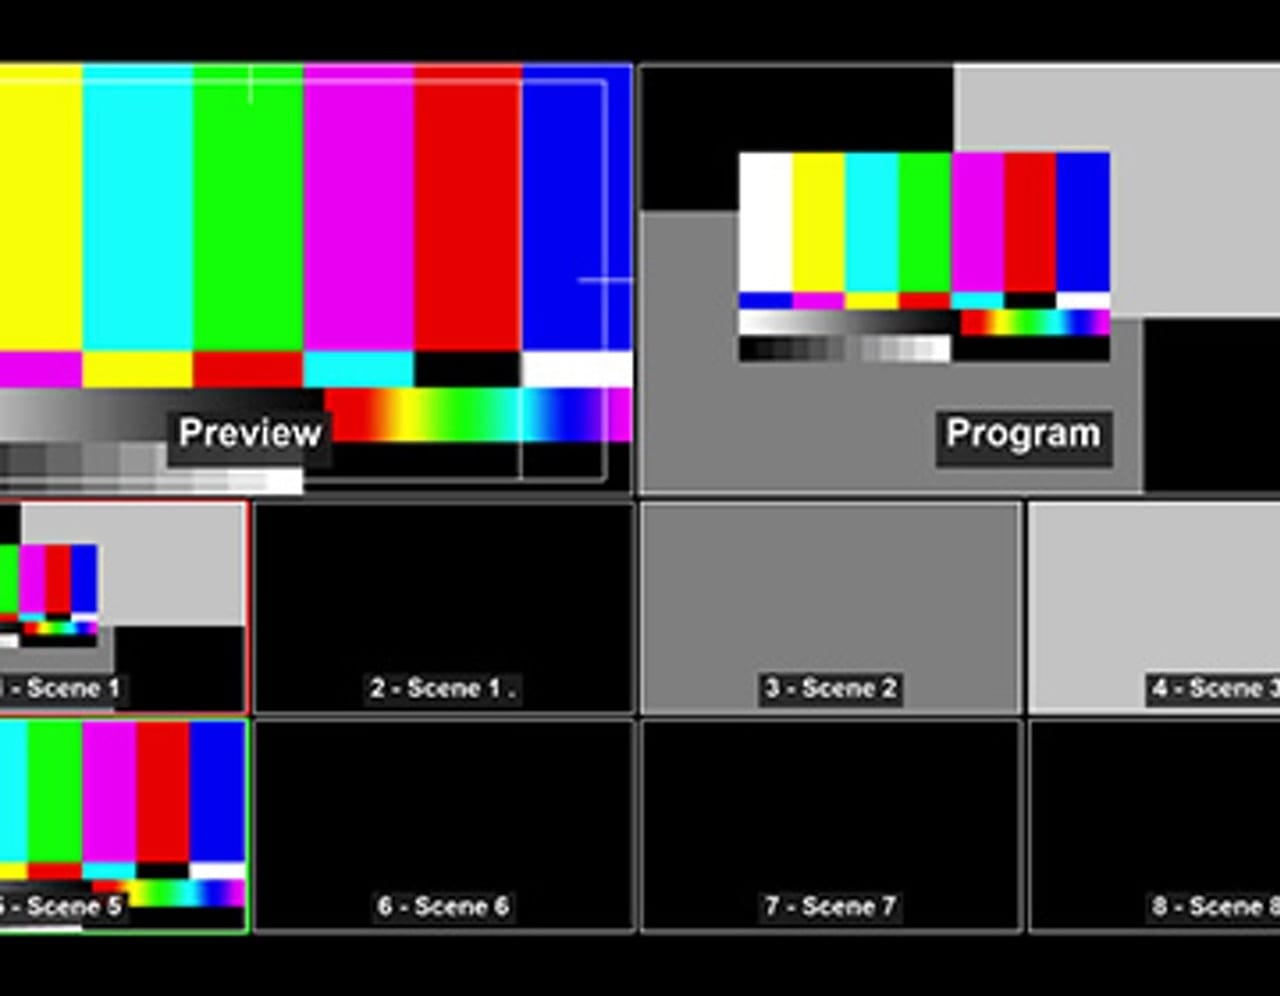 A screen capture of Multiview in OBS, which allows the monitoring of up to eight separate scenes that can be cued and transitioned to